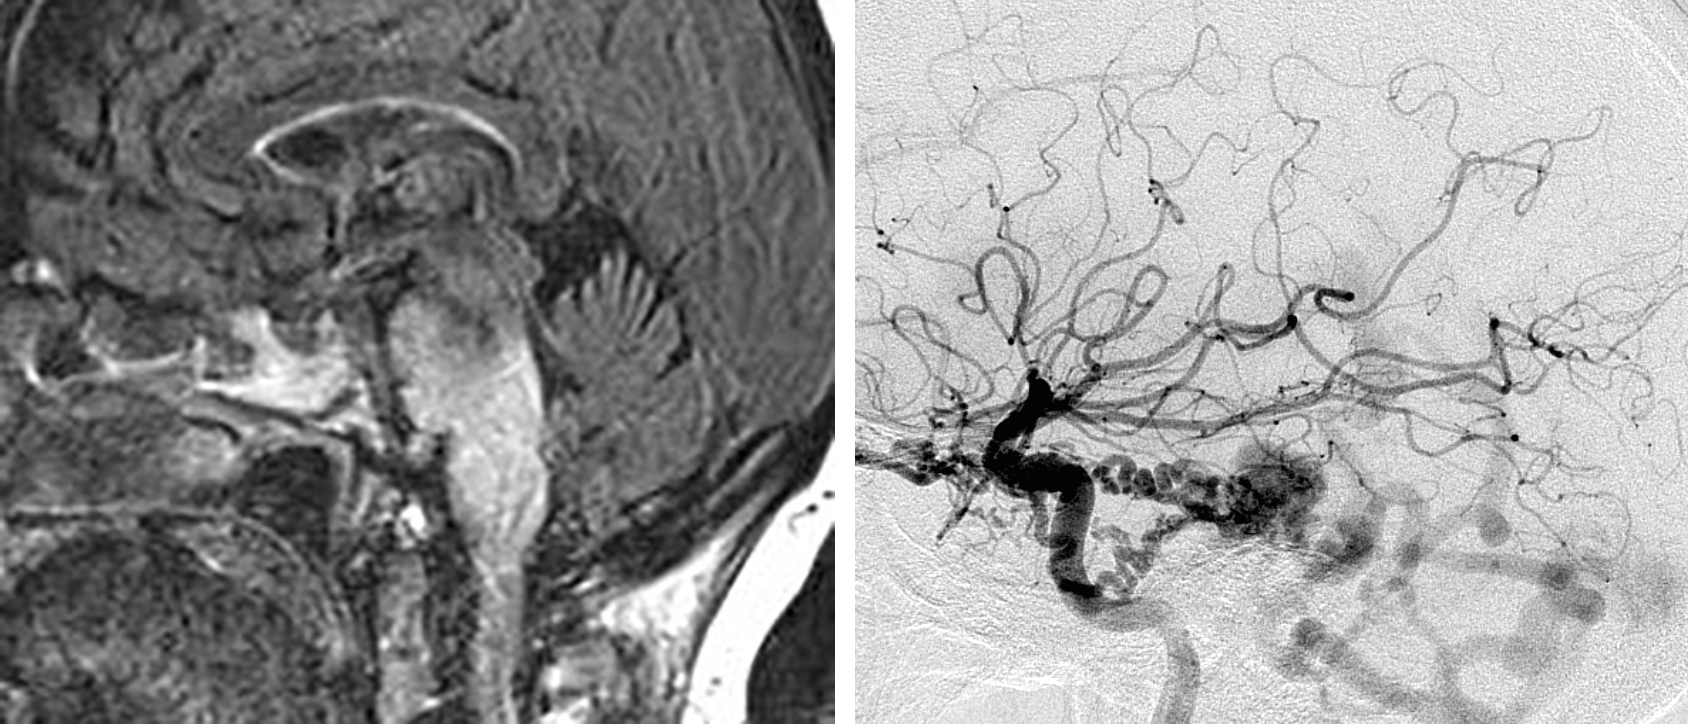 Figure 1: A petrosal dAVF may rarely lead to symptomatic venous hypertension within the brainstem (left image). A lateral internal carotid artery (ICA) angiogram (right) demonstrates a petrosal dAVF supplied by tentorial feeders from the ICA and draining into the petrosal vein with arterialization of the posterior fossa veins.